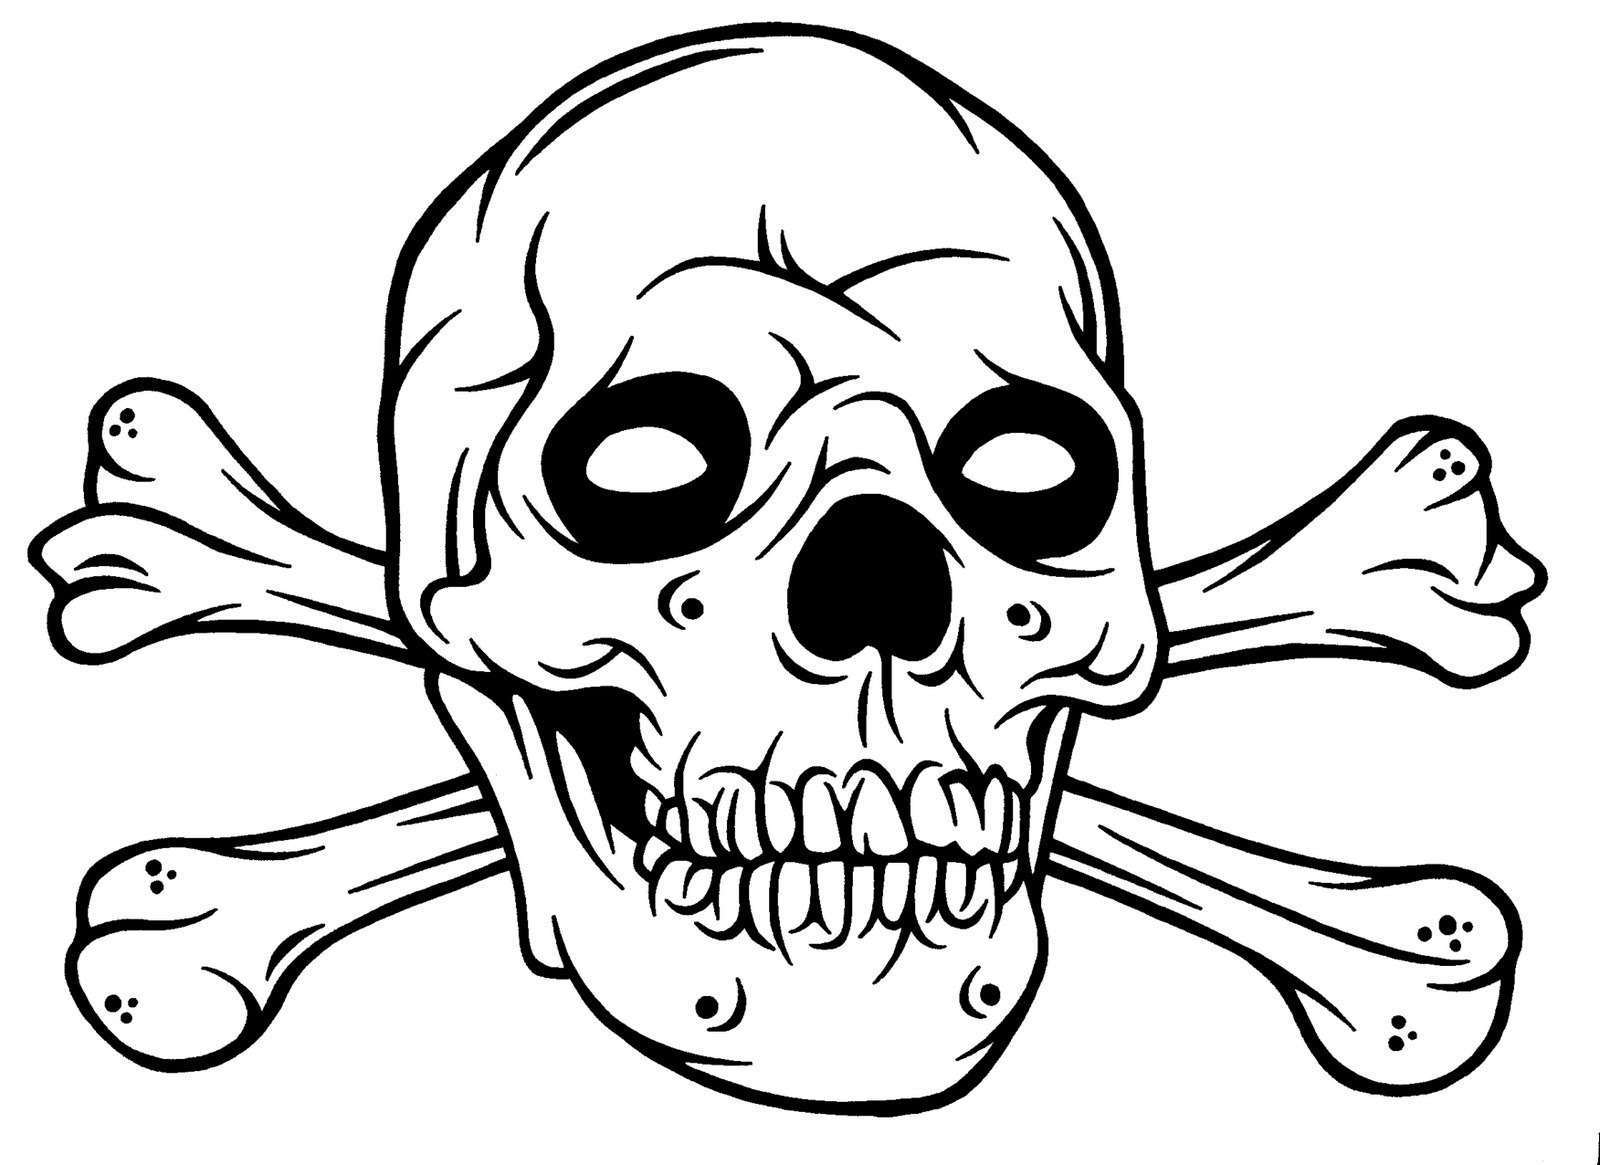 Flaming Skull Designs To Draw